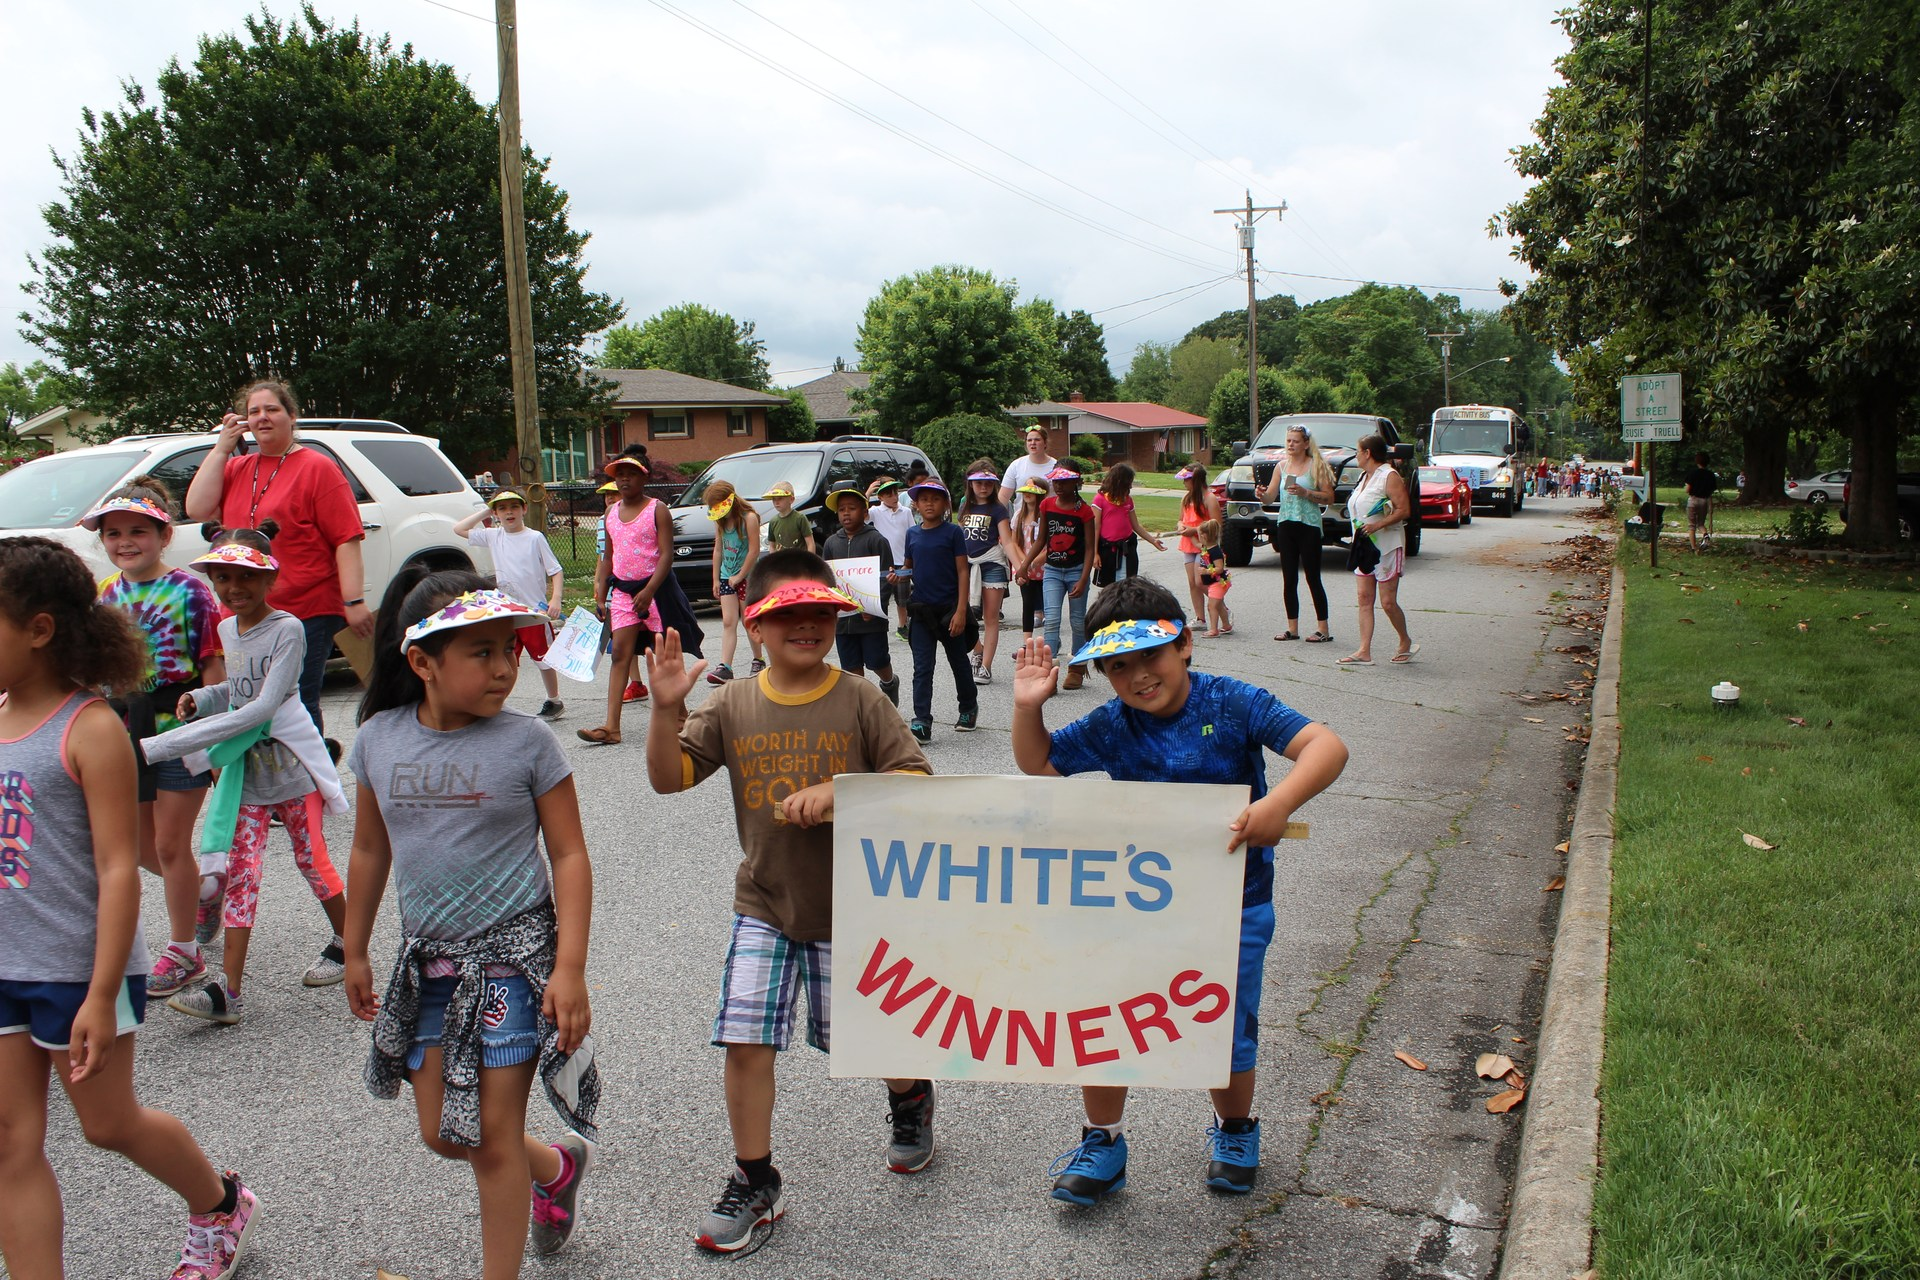 Ms. White's class marching with banner